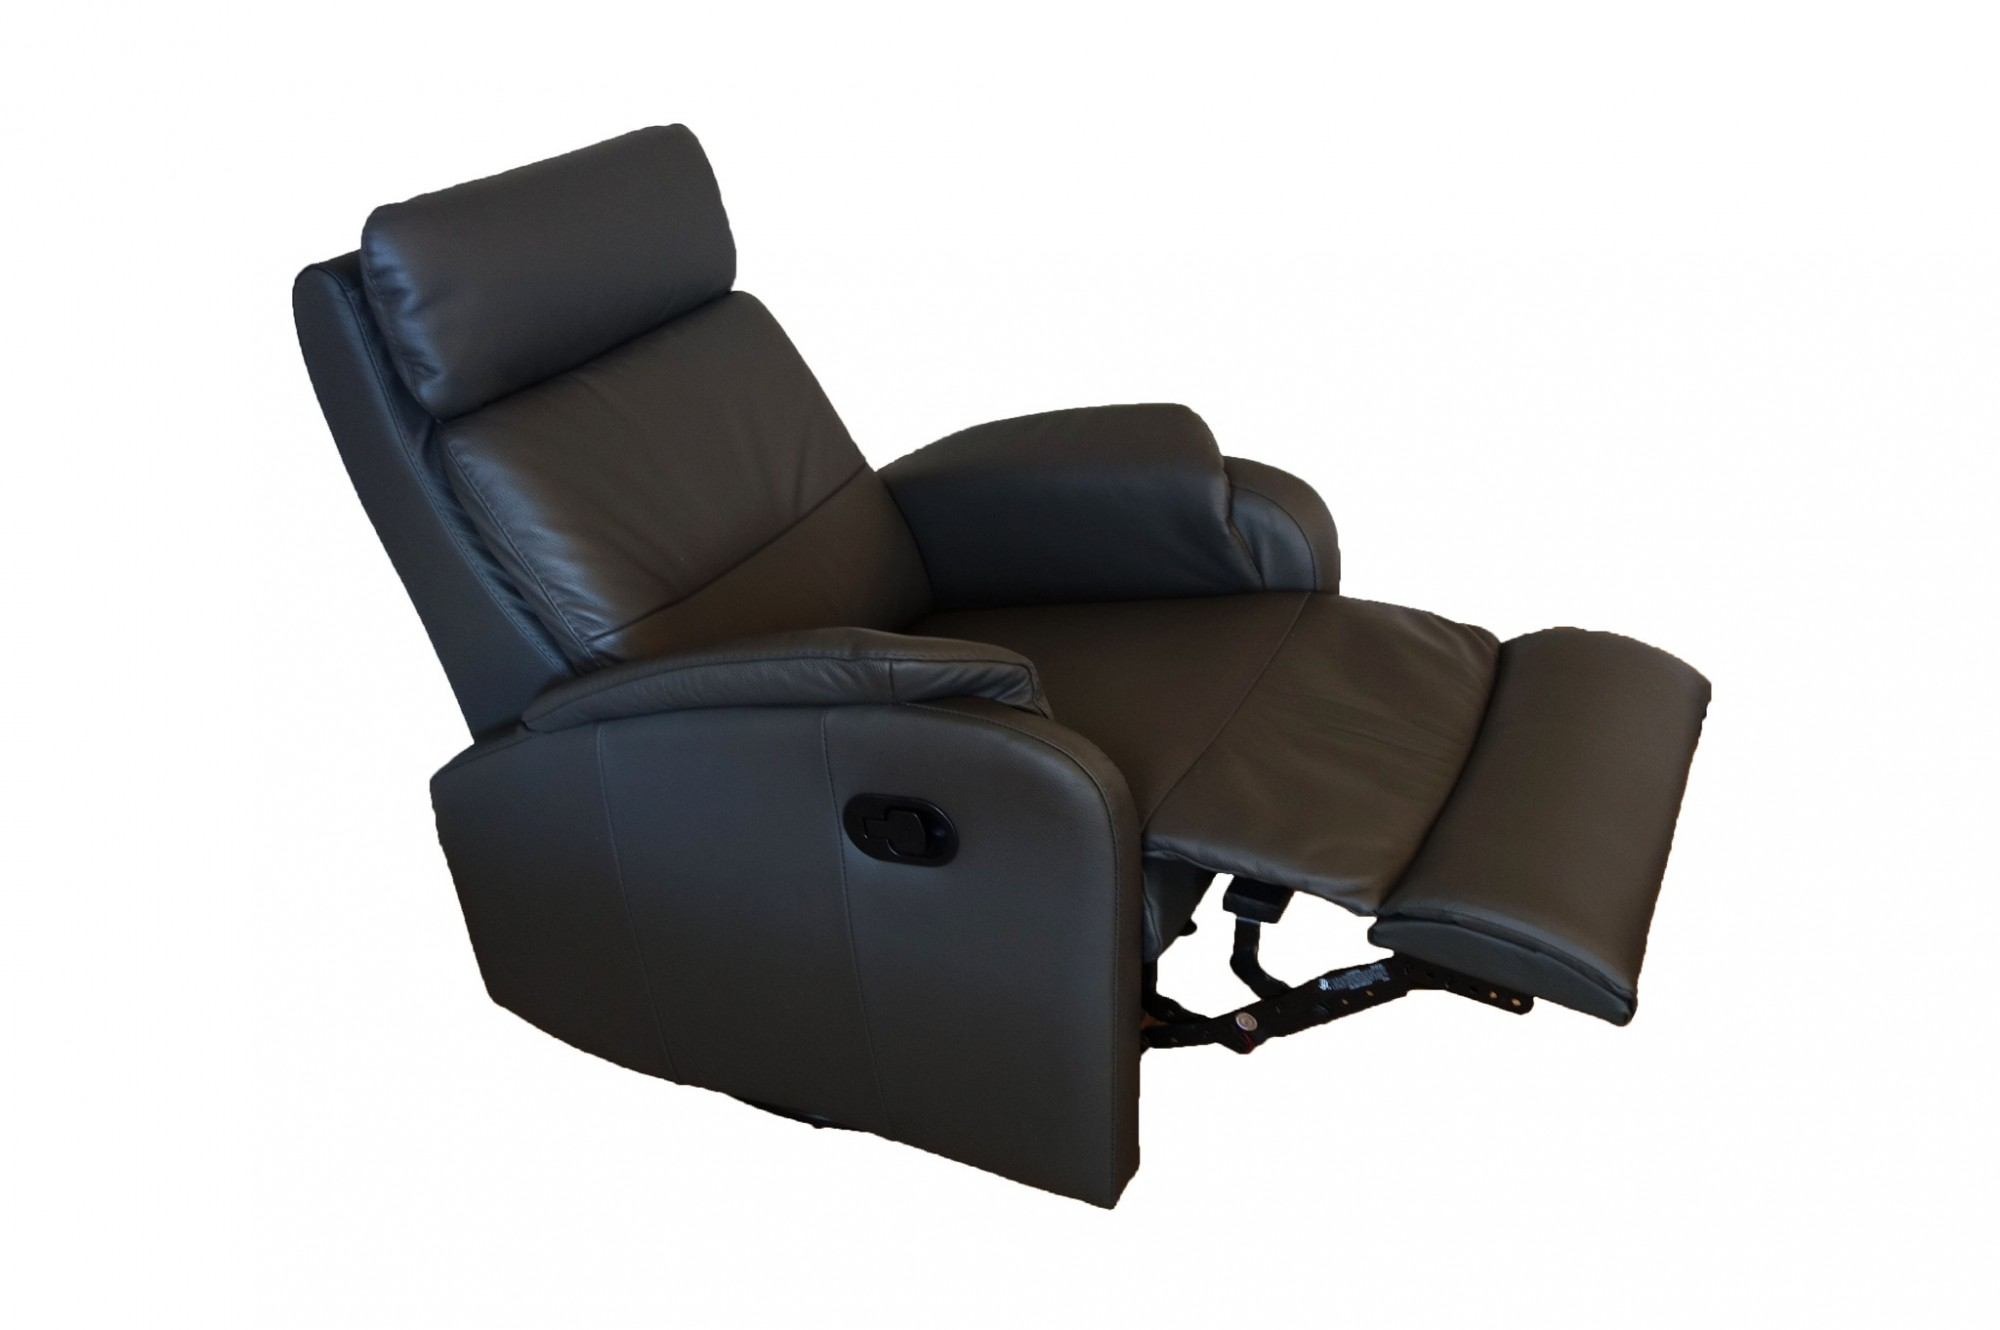 Caro black leather reclining armchair